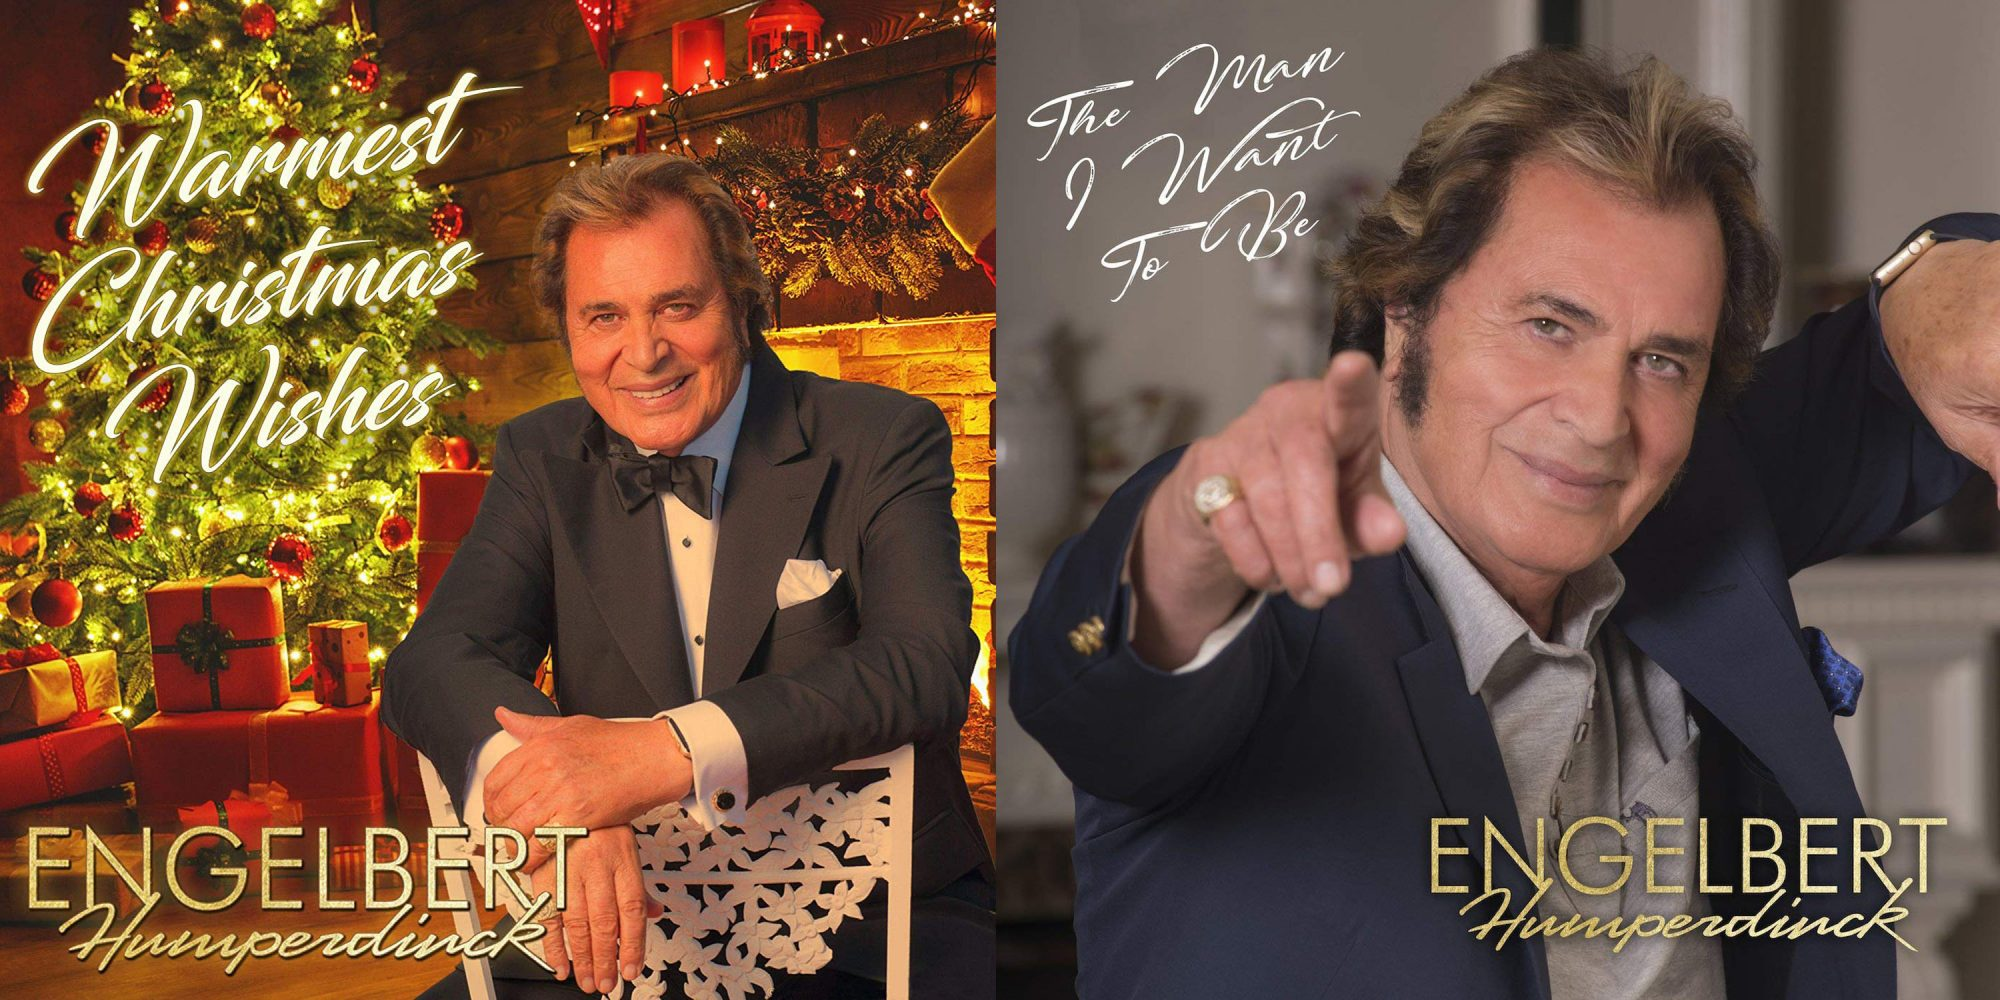 engelbert humperdinck, warmest christmas wishes, the man i want to be, album covers